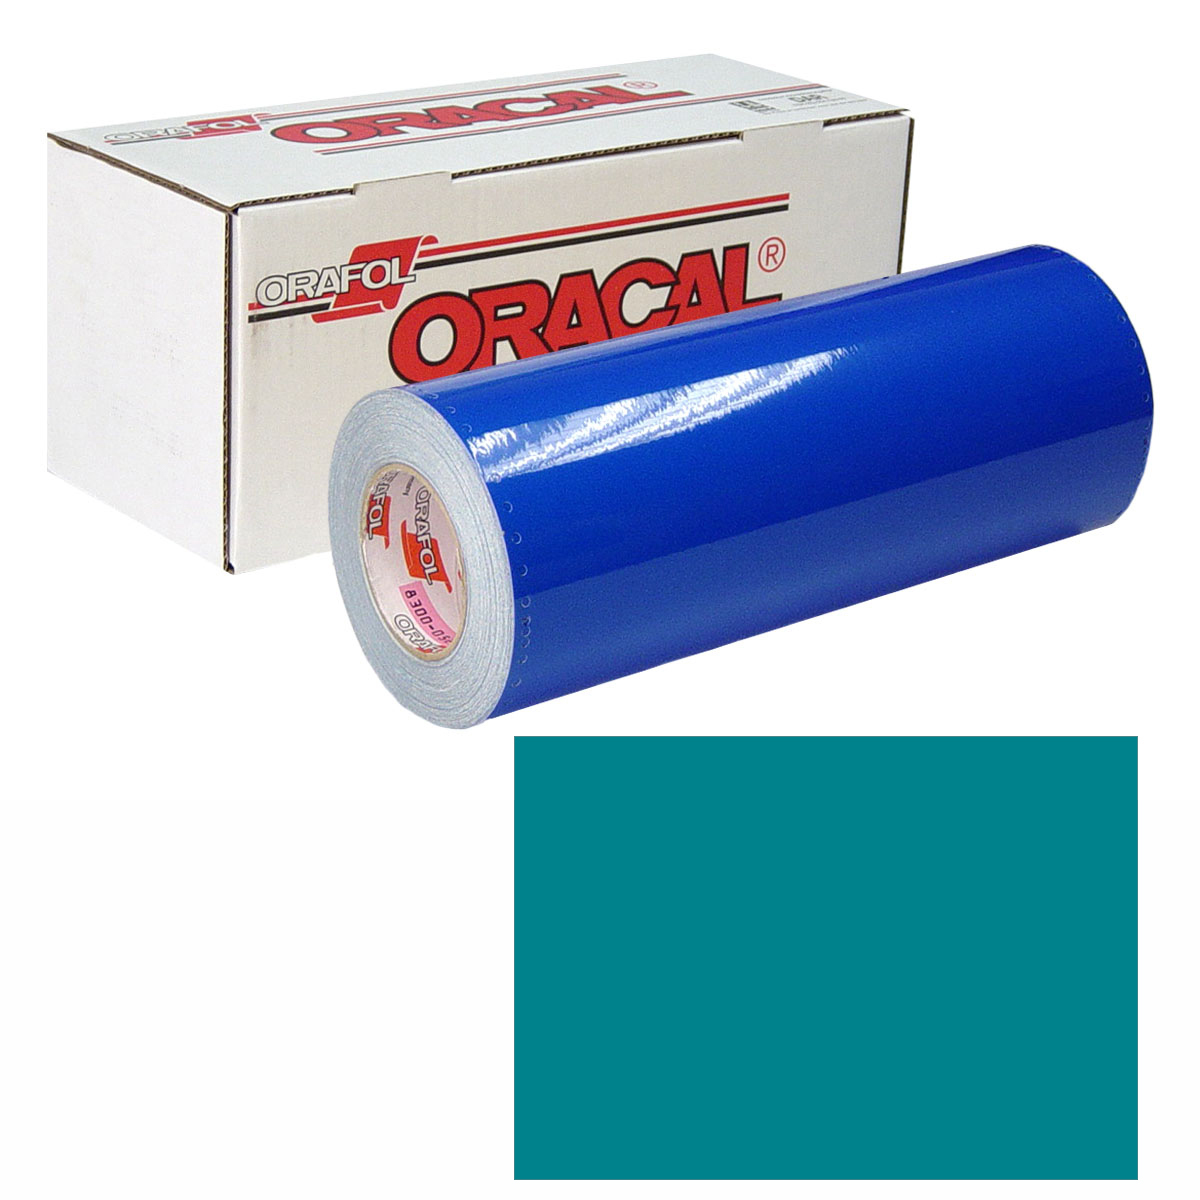 ORACAL 631 Unp 24in X 10yd 066 Turquoise Blue